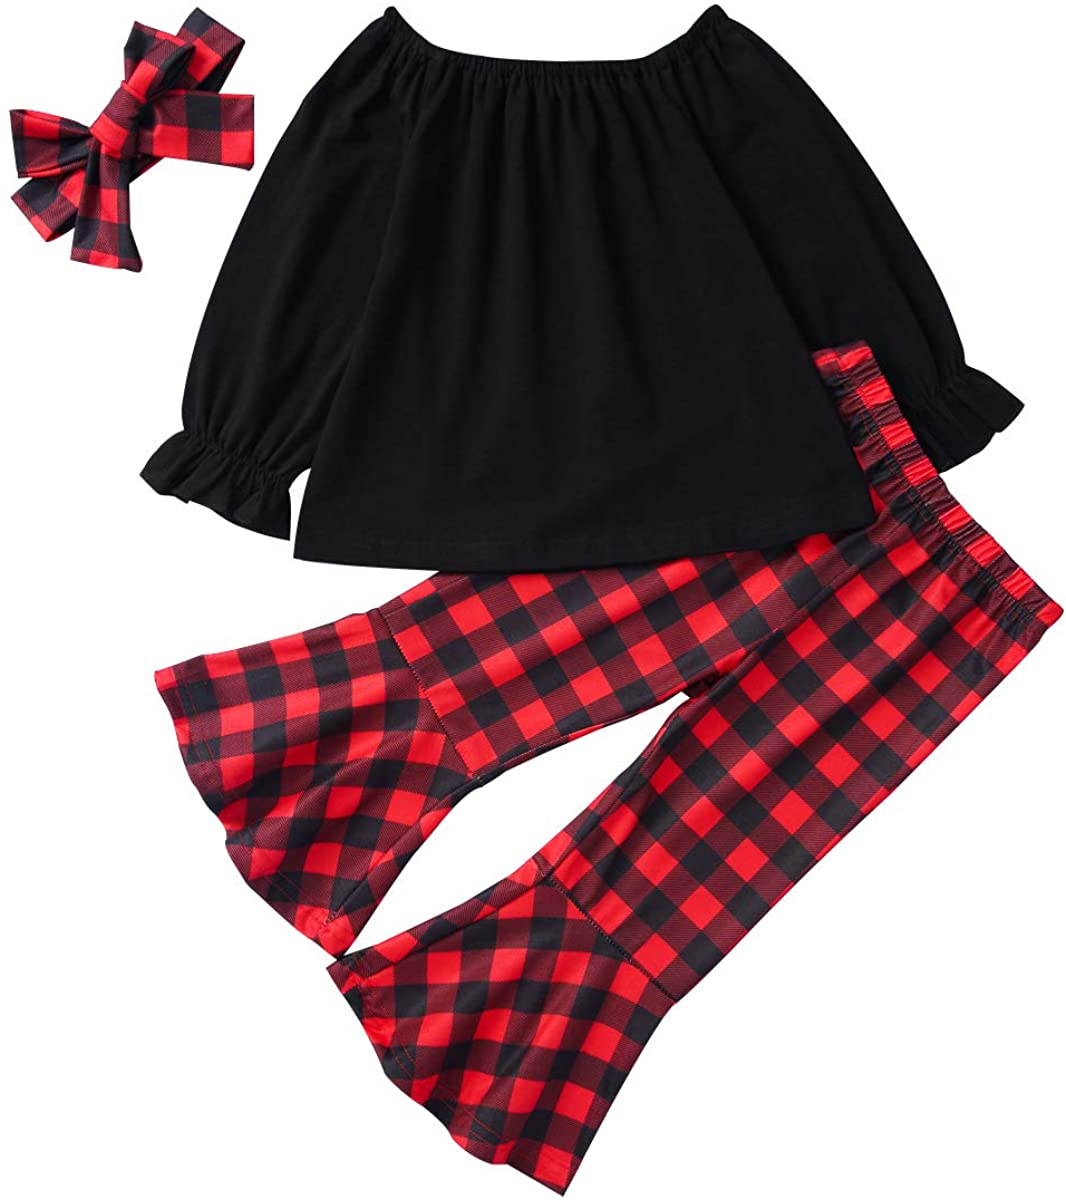 3PCS Kids Toddler Baby Girls X-mas Outfits Solid Bell Long Sleeve Plaid Flare Pants Winter Clothes Set